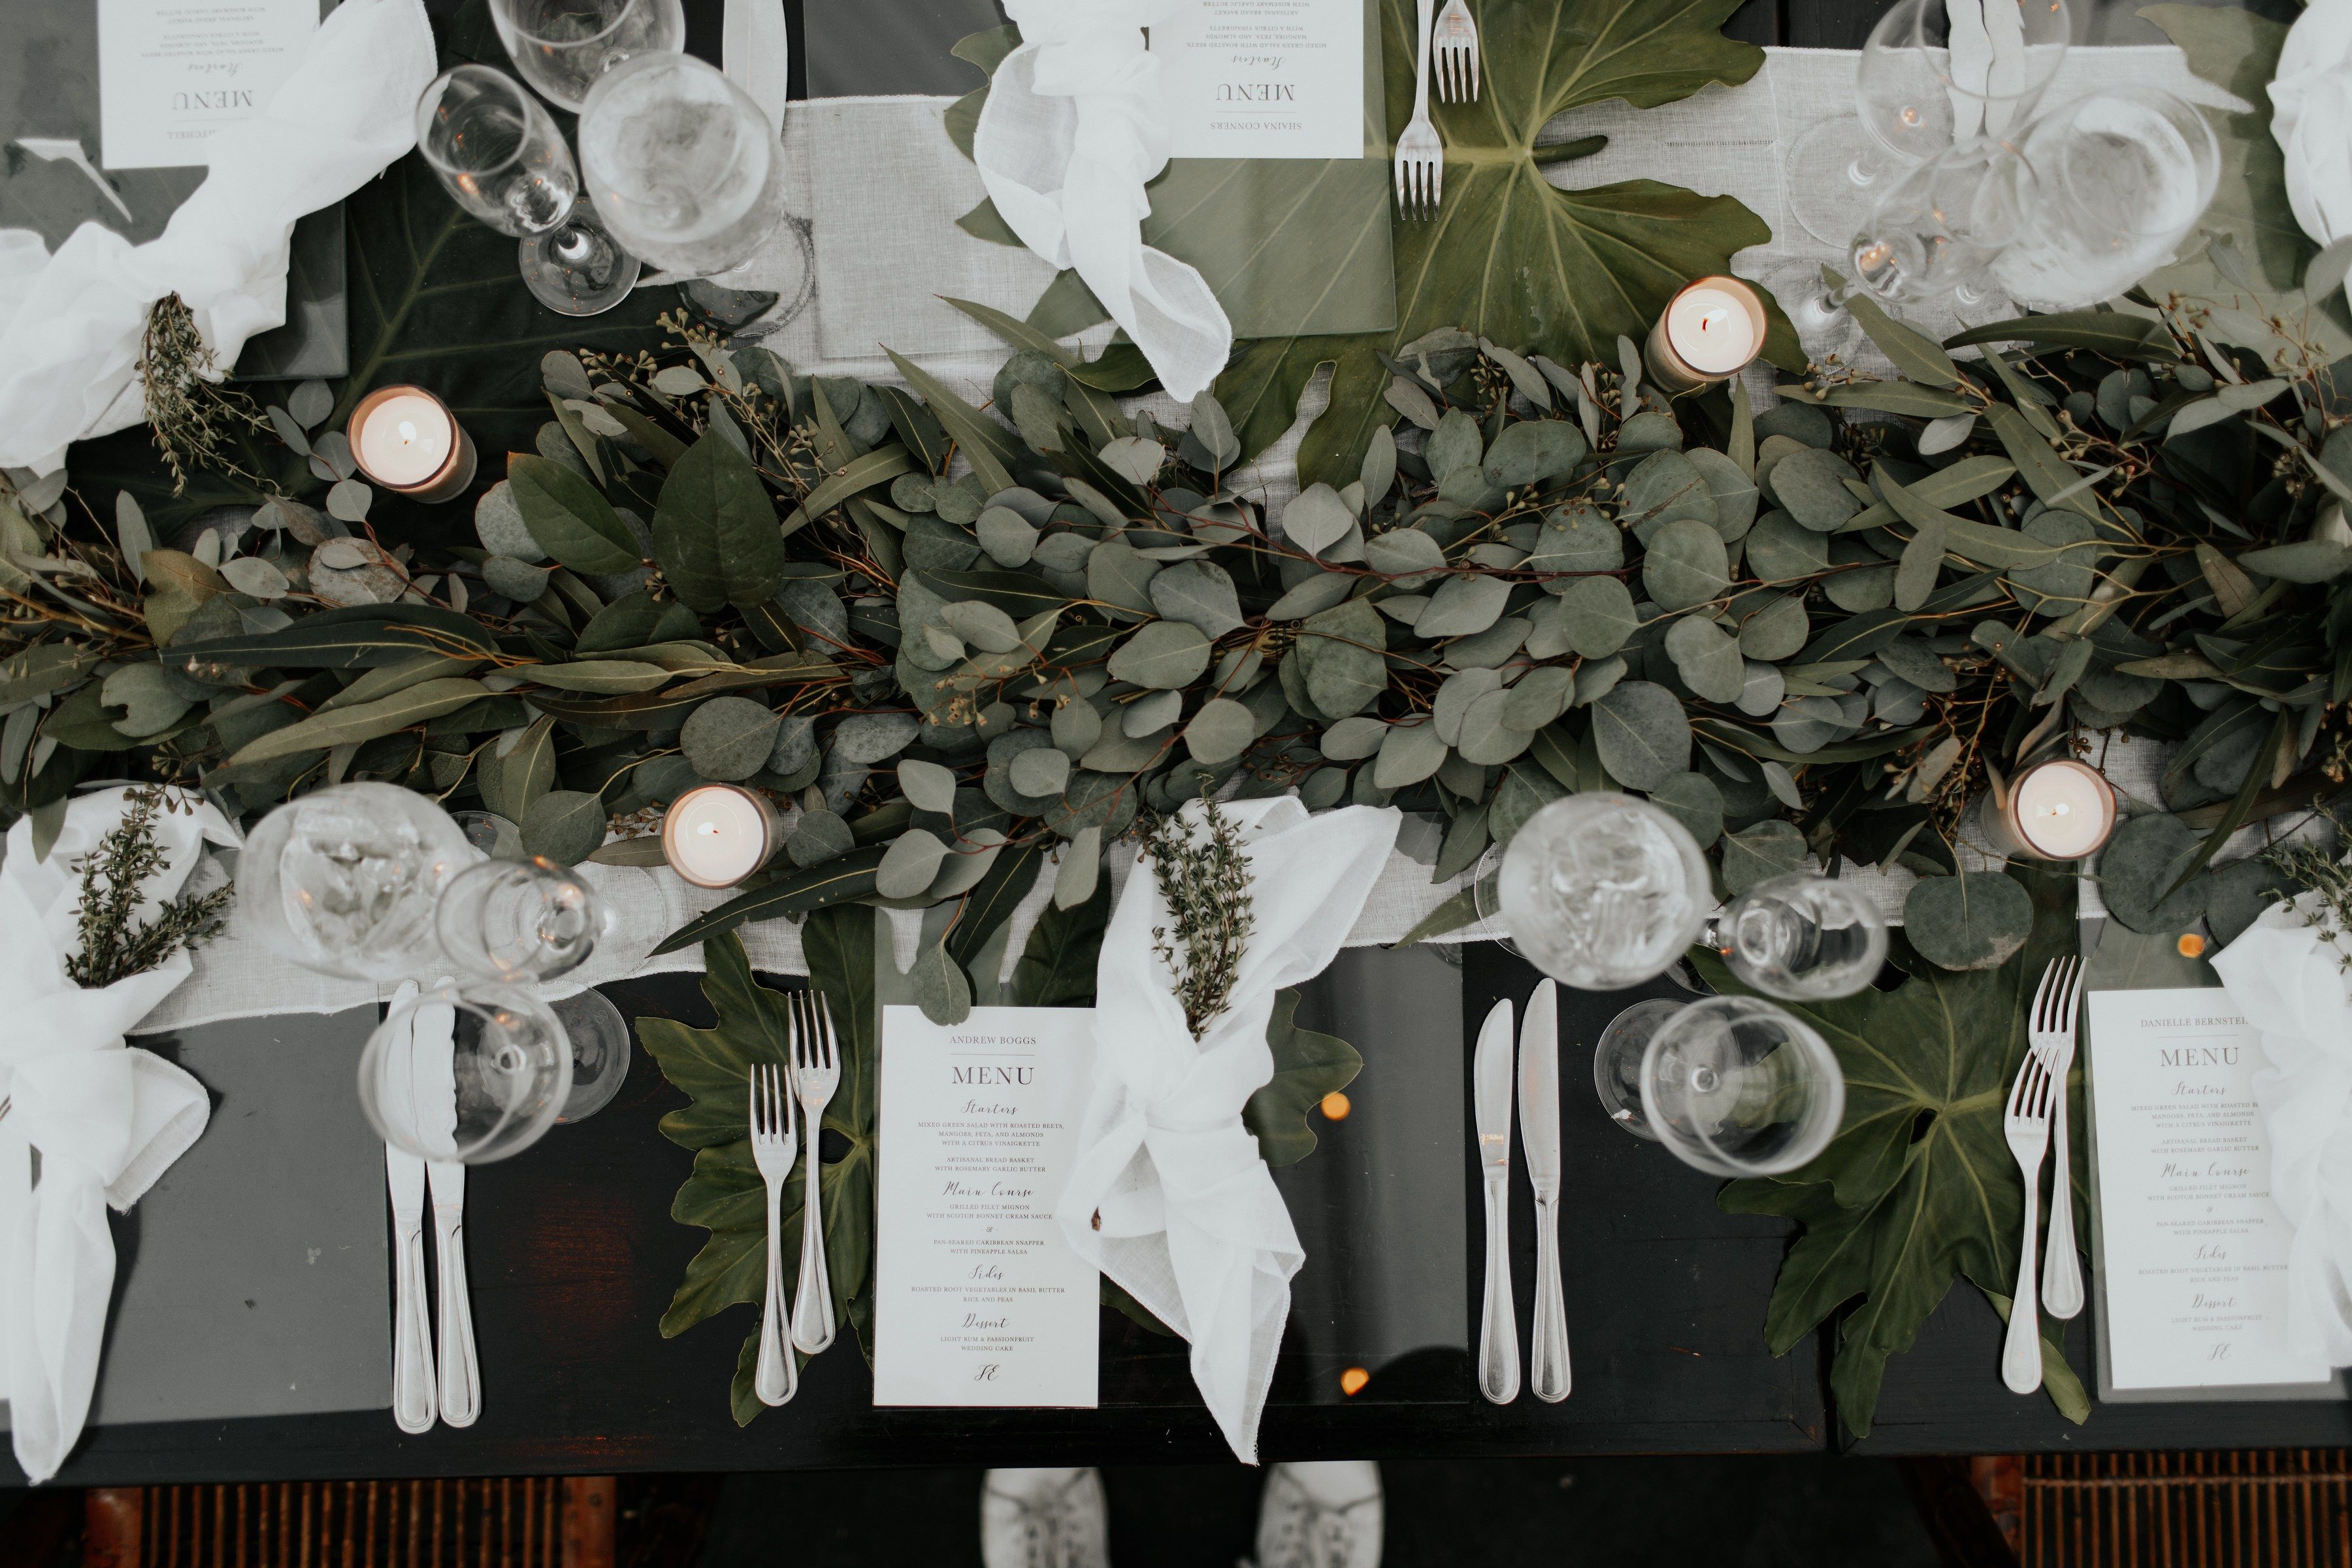 Garden wedding reception decor   Stunning Eucalyptus Wedding Decor Ideas  Fire u Lighting Wedding